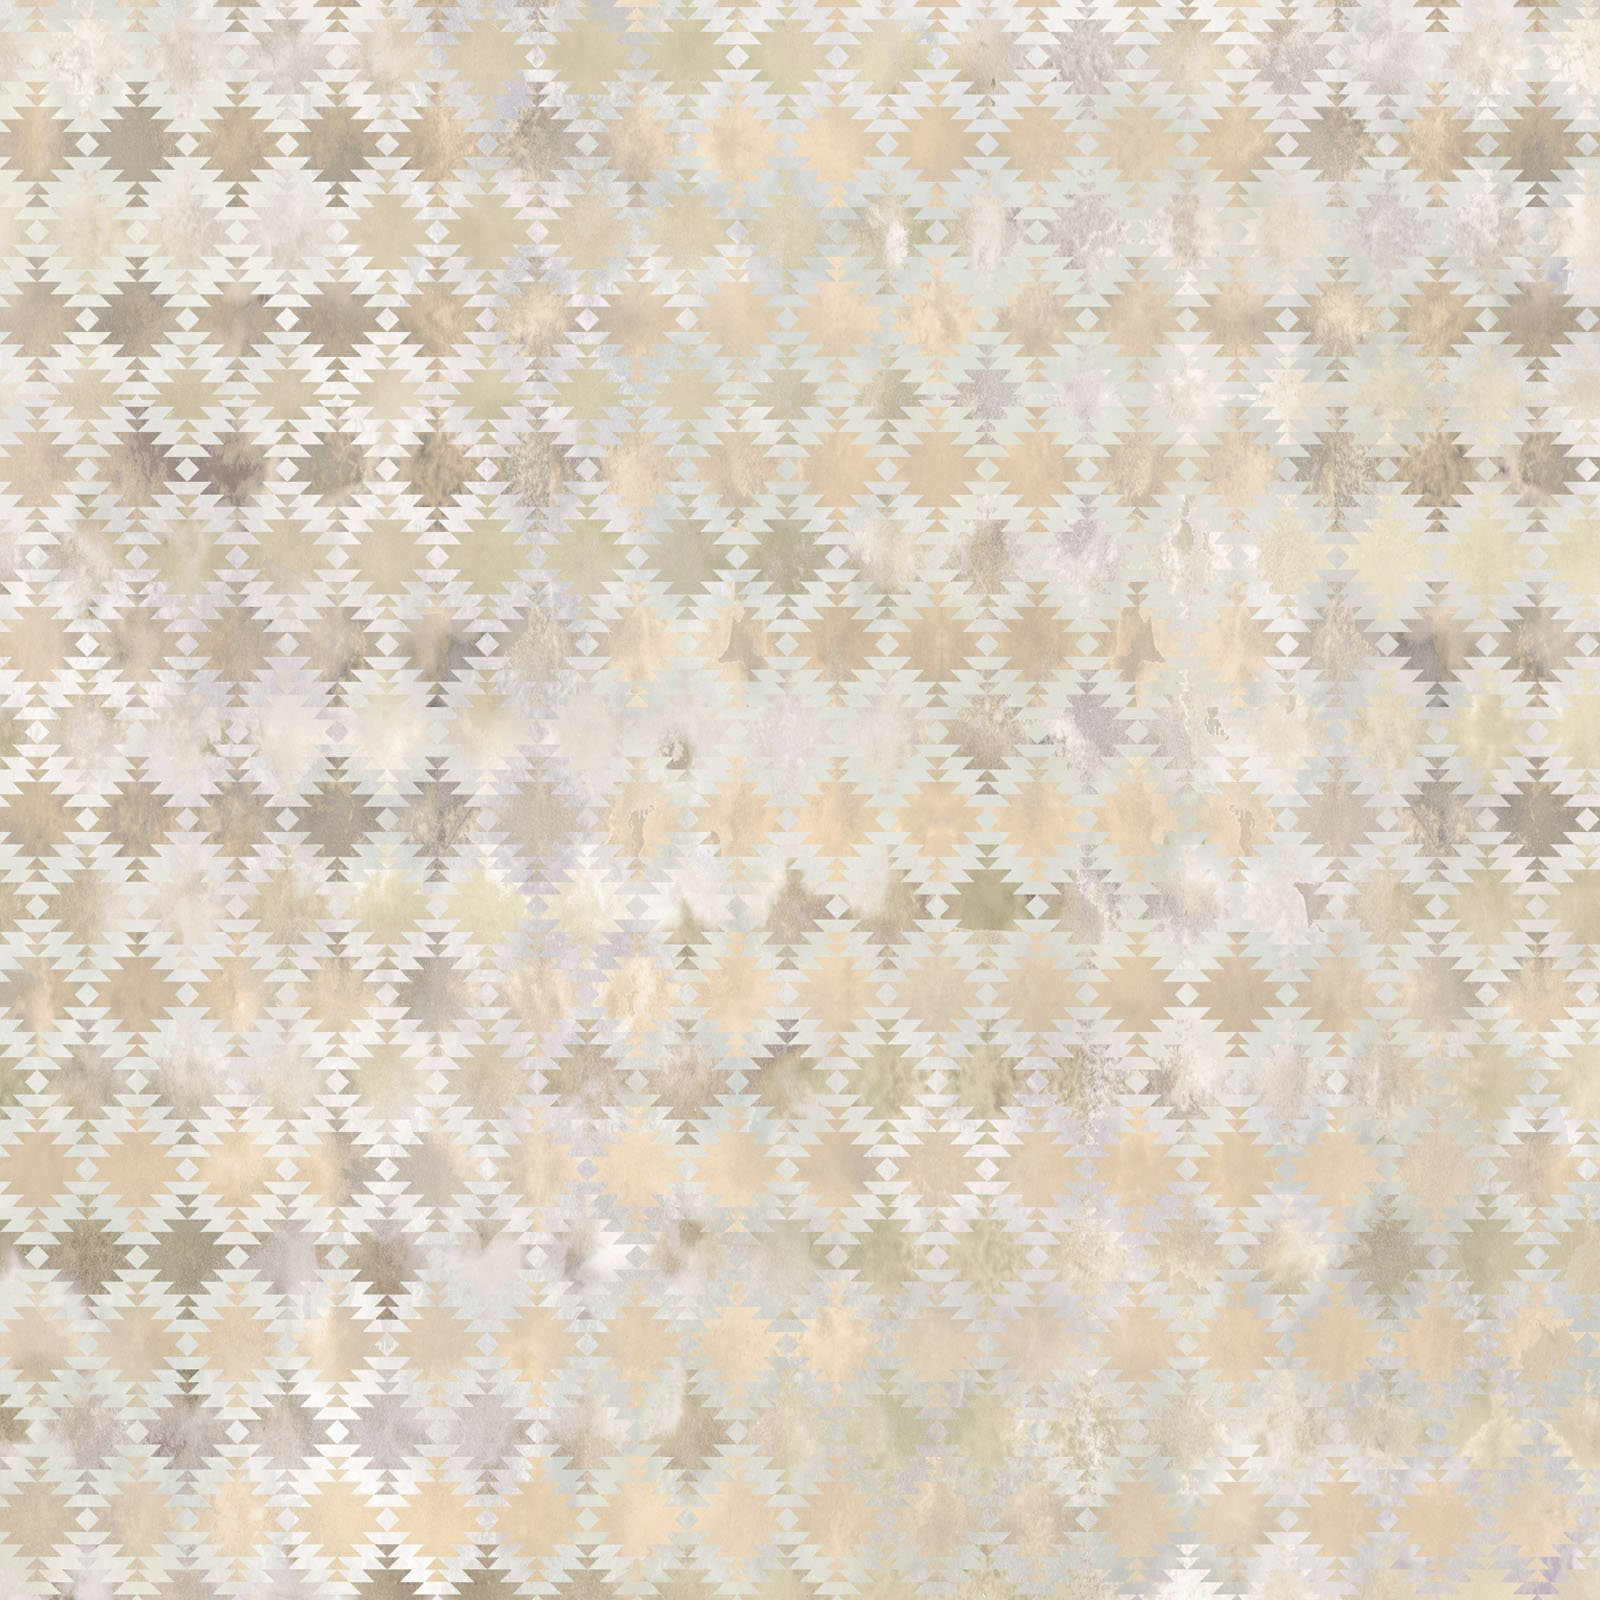 INTH-8SOU 1 - SOUTHWEST BY IN THE BEGINNING STUDIO WOVEN CREAM - ARRIVING JUNE 2021